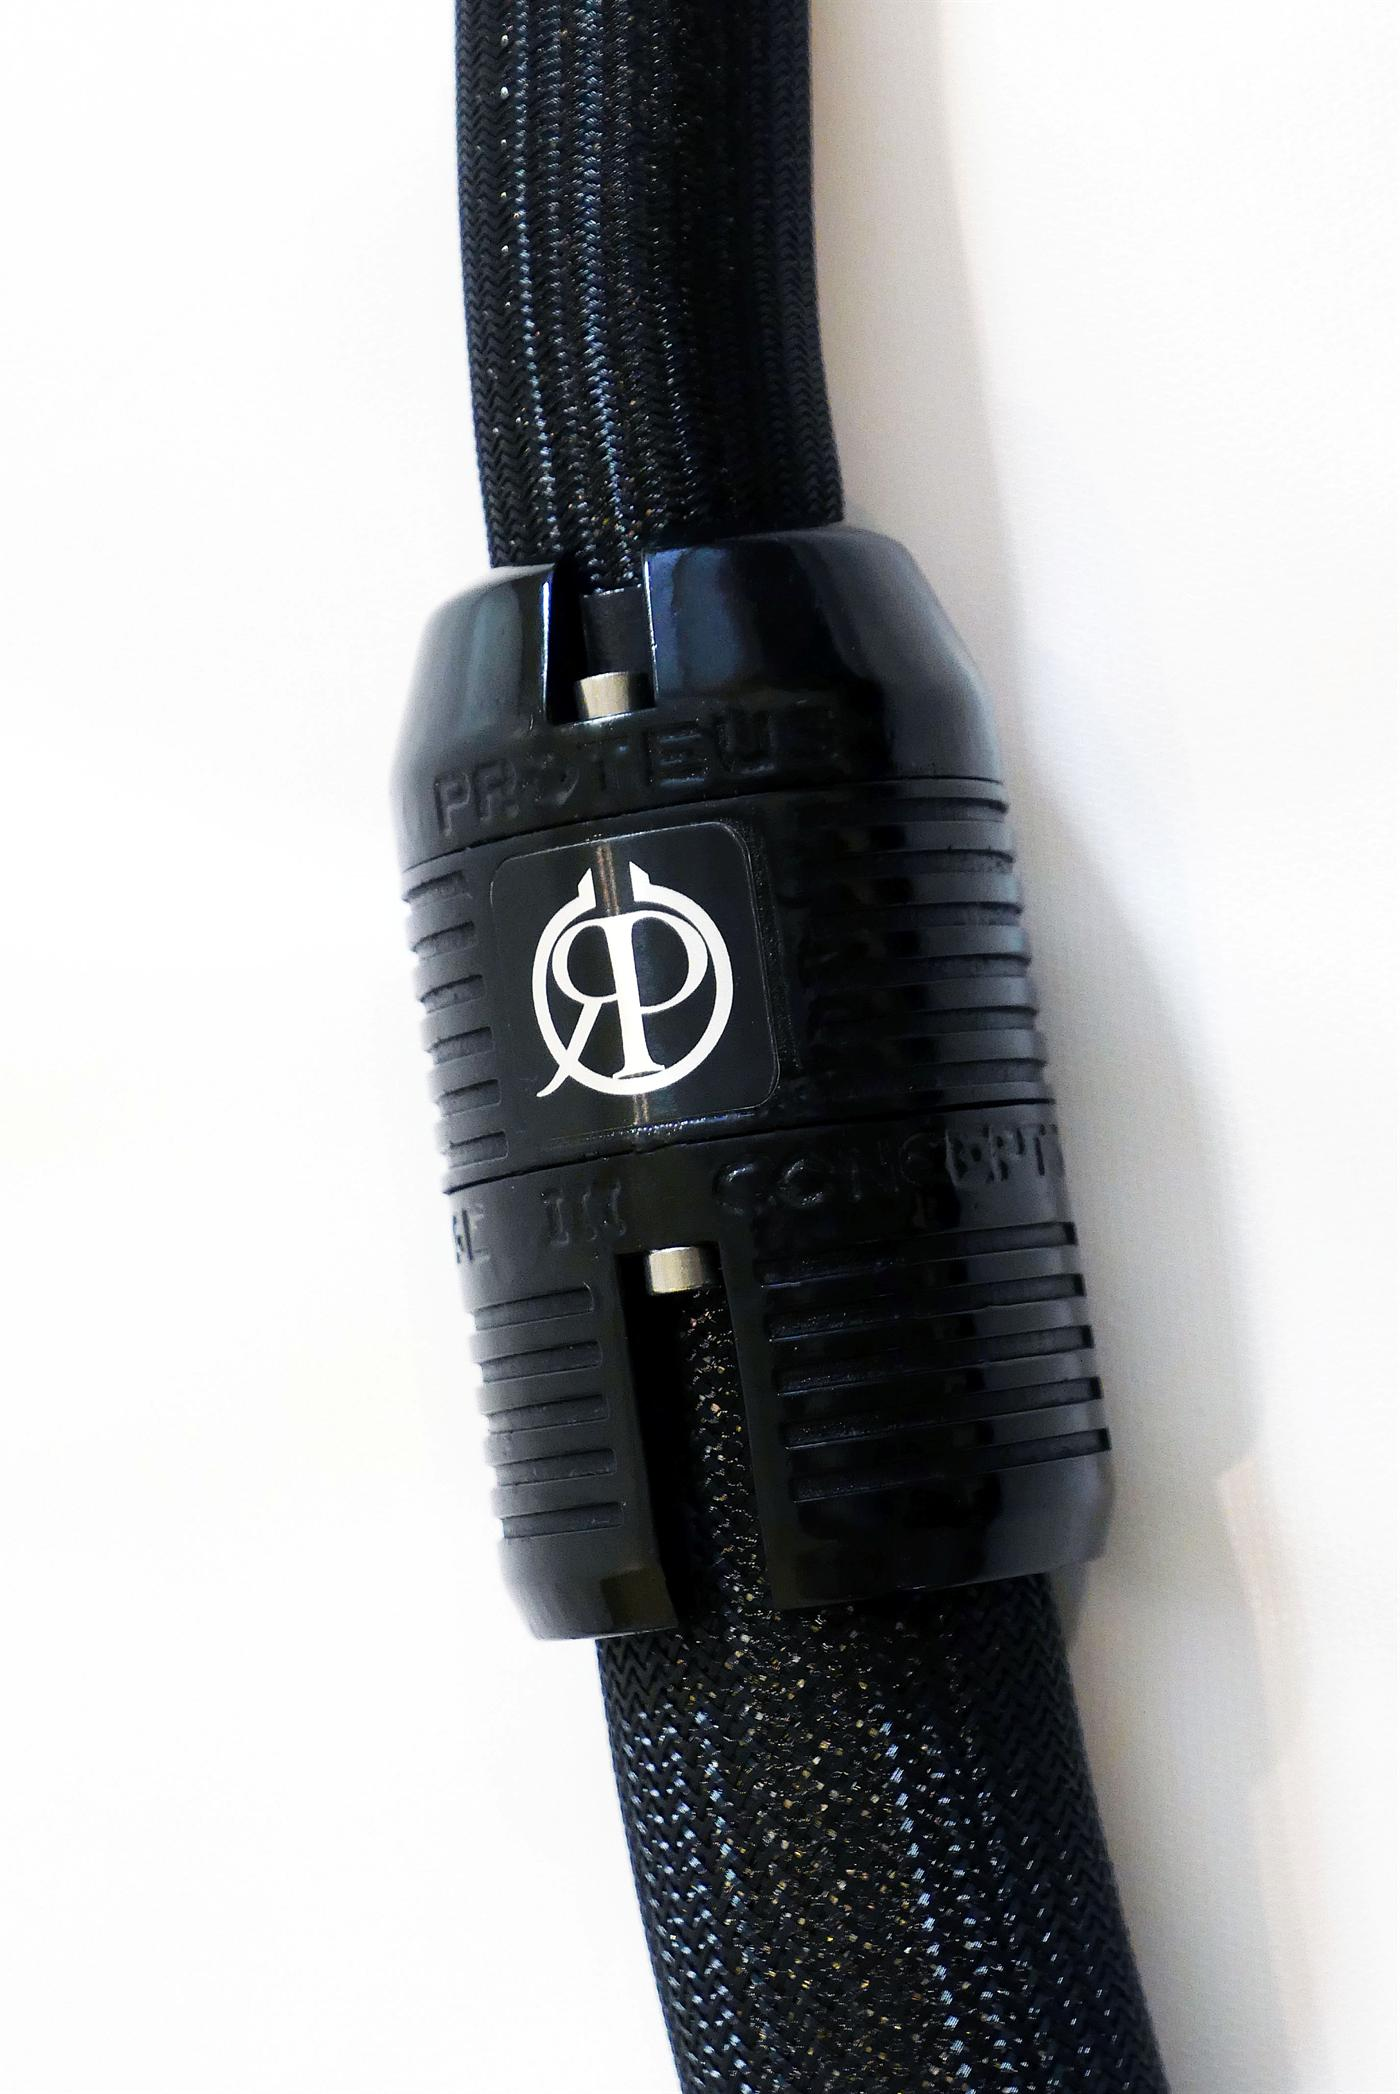 singularity-audio-uk-stage-iii-concepts-proteus-power-cable-uk-dealer